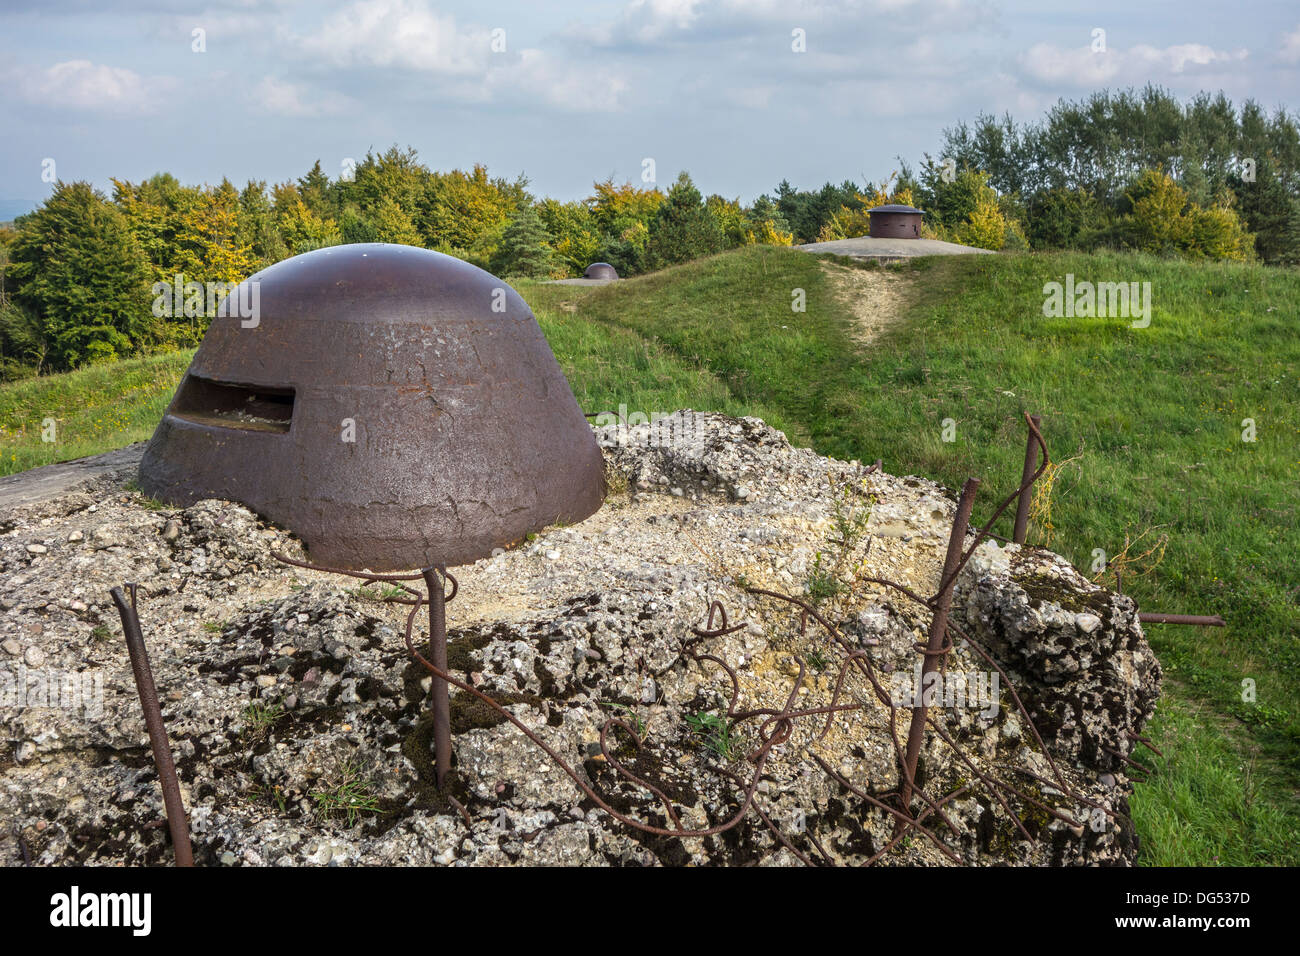 First World War One armoured observation turret and machine gun turrets at Fort de Douaumont, Lorraine, Battle of Verdun, France - Stock Image